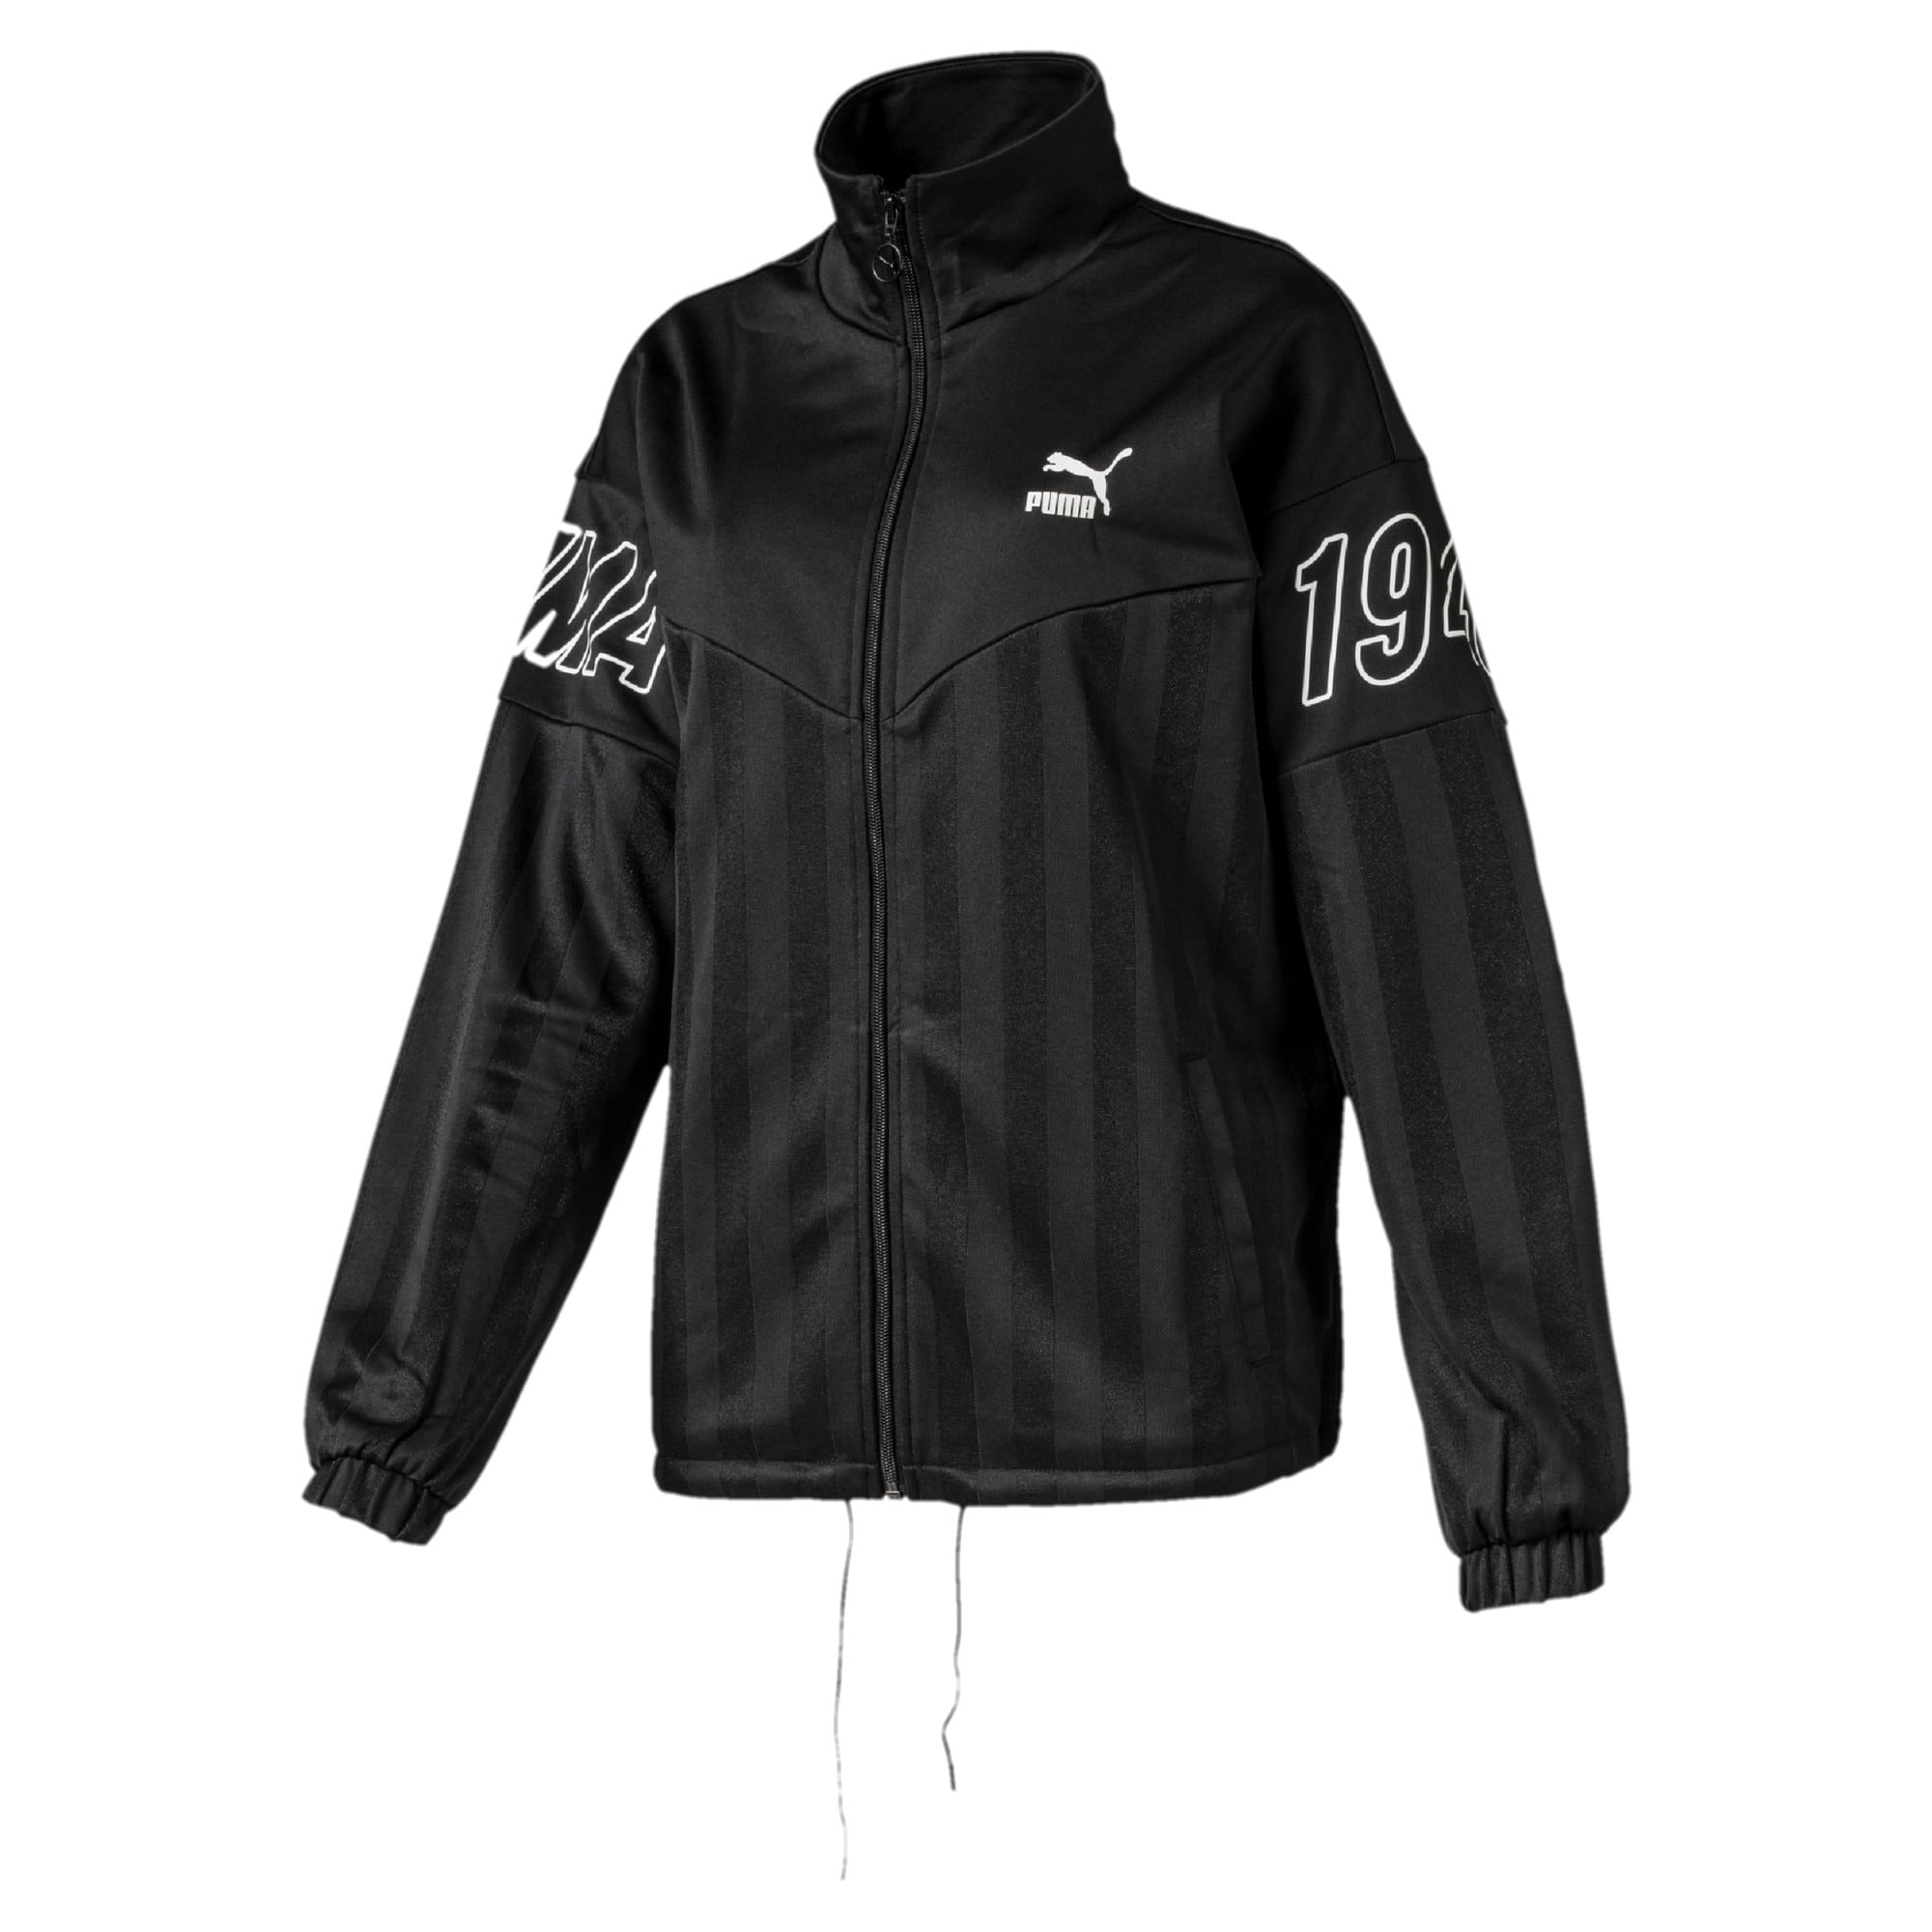 Thumbnail 1 of luXTG Jacquard Women's Track Jacket, Puma Black, medium